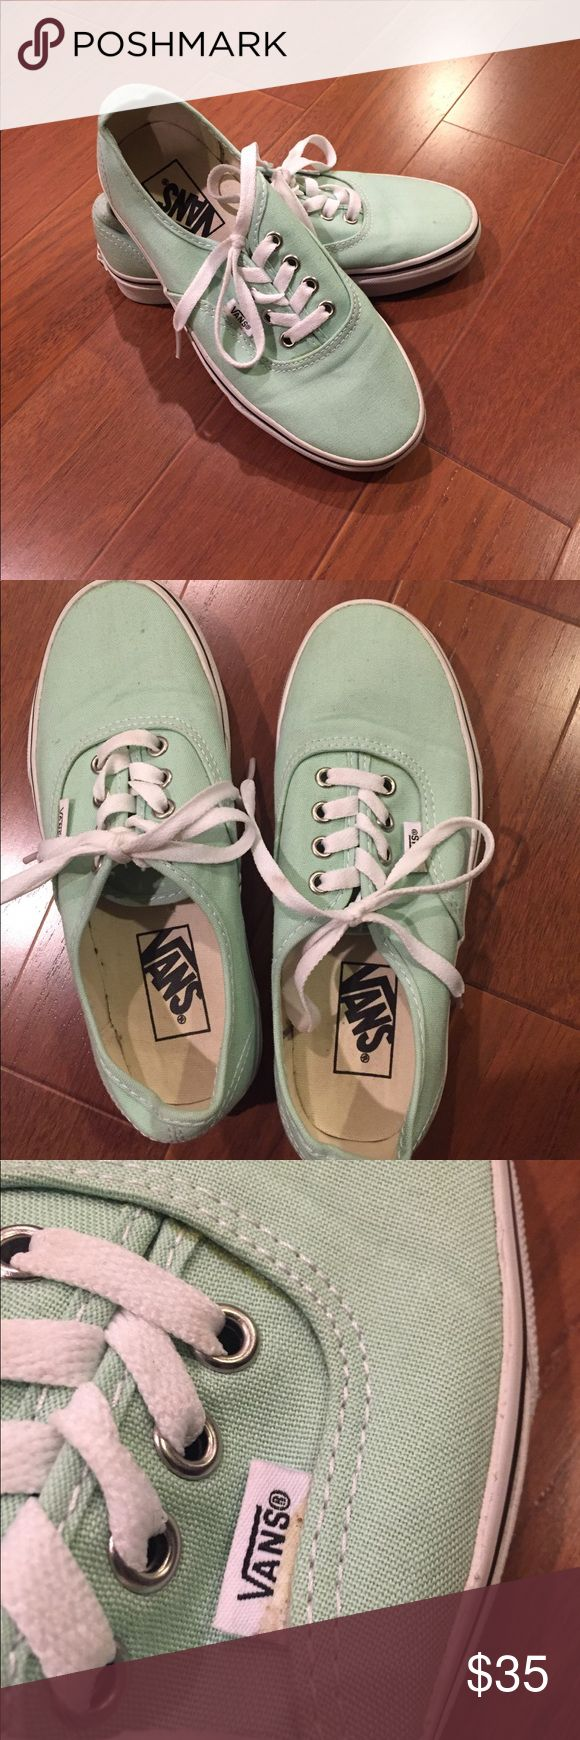 Mint green Vans sneakers Wore it out of the house like once or twice, like new condition! A couple imperfections (pictured above) but besides that, the soles and insides are in new condition. Vans Shoes Sneakers